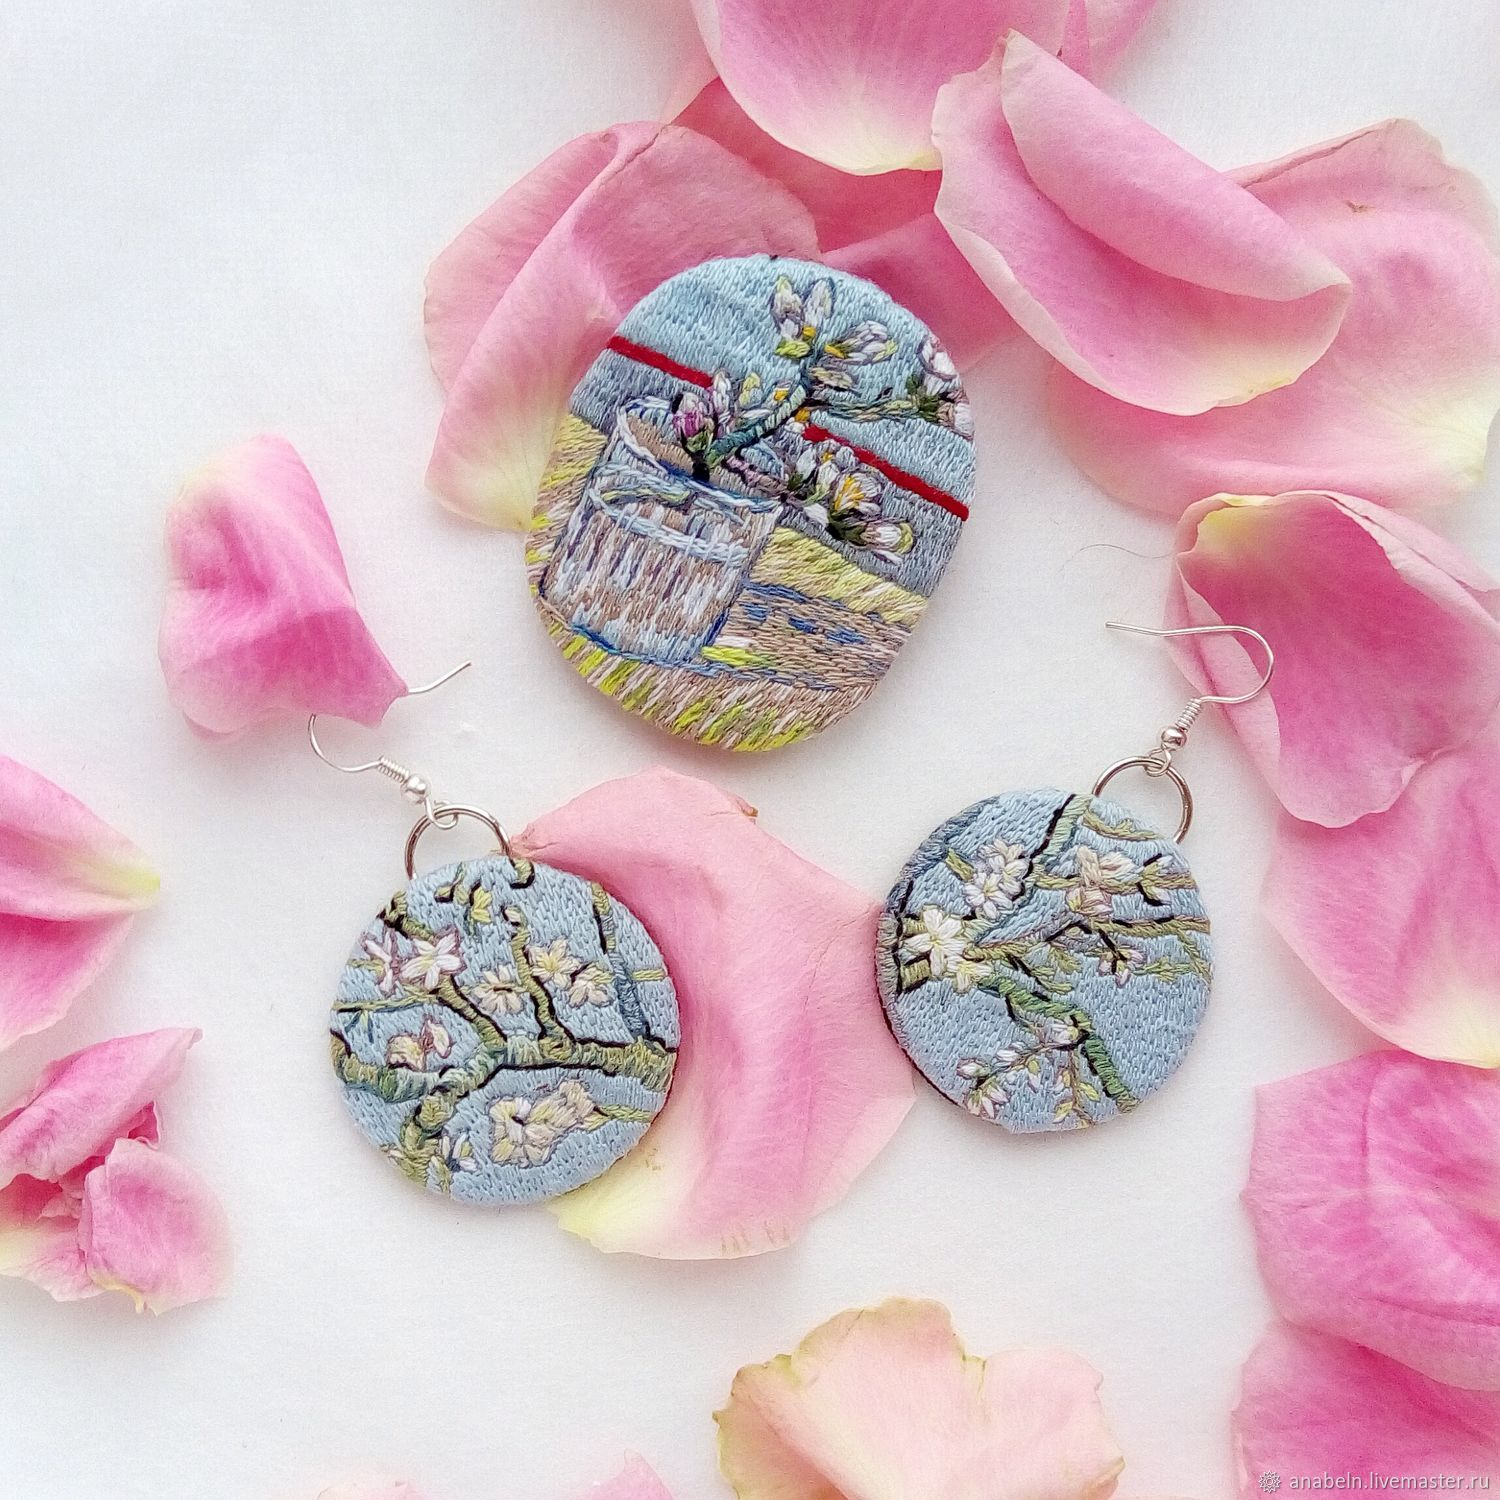 Earrings based on the painting In Van Gogh almond blossom – shop